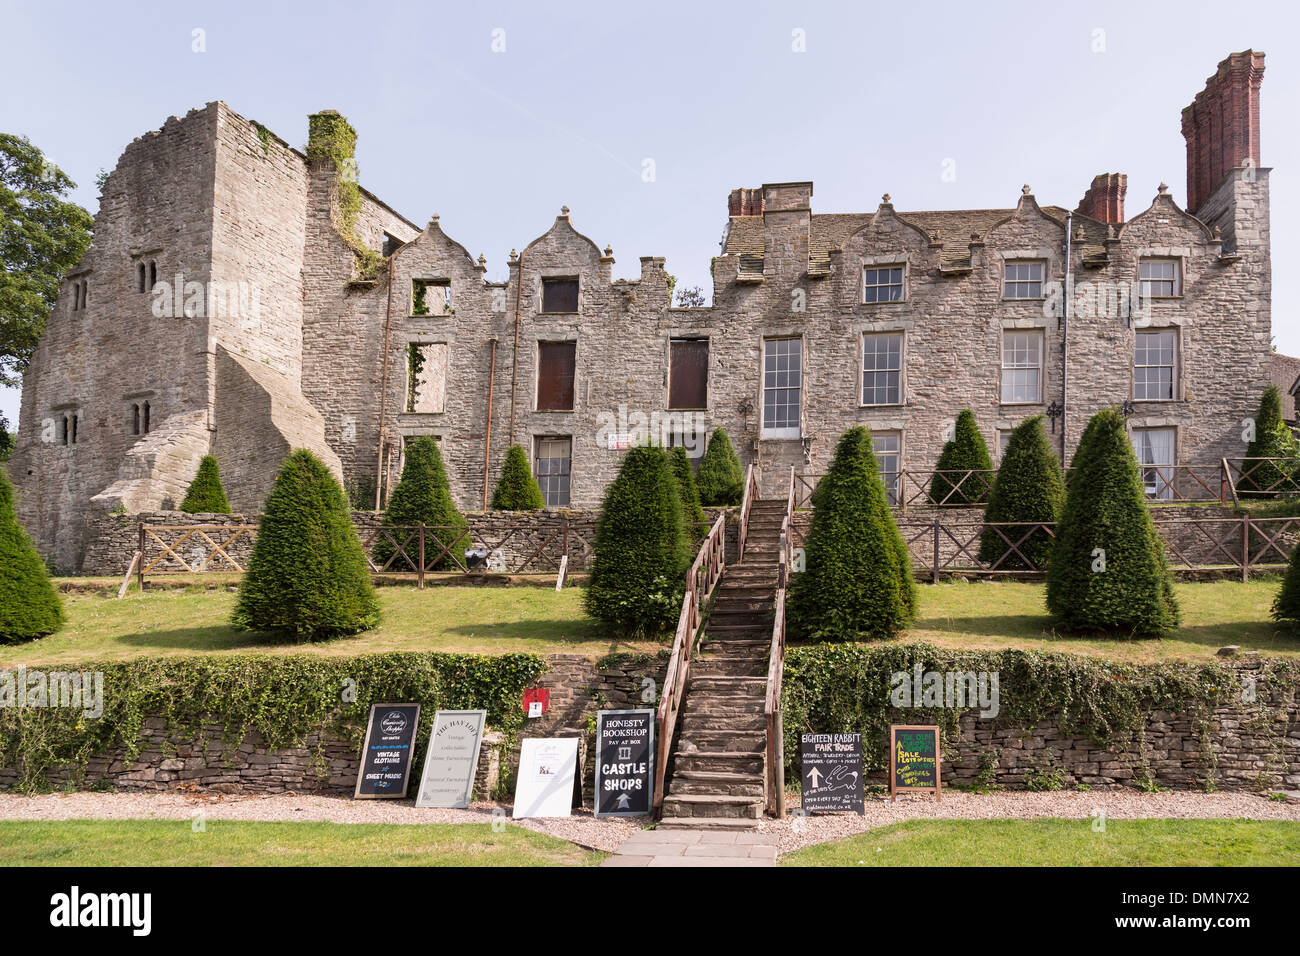 Castle and steps to shops, Hay on Wye, Hereford, England, UK - Stock Image